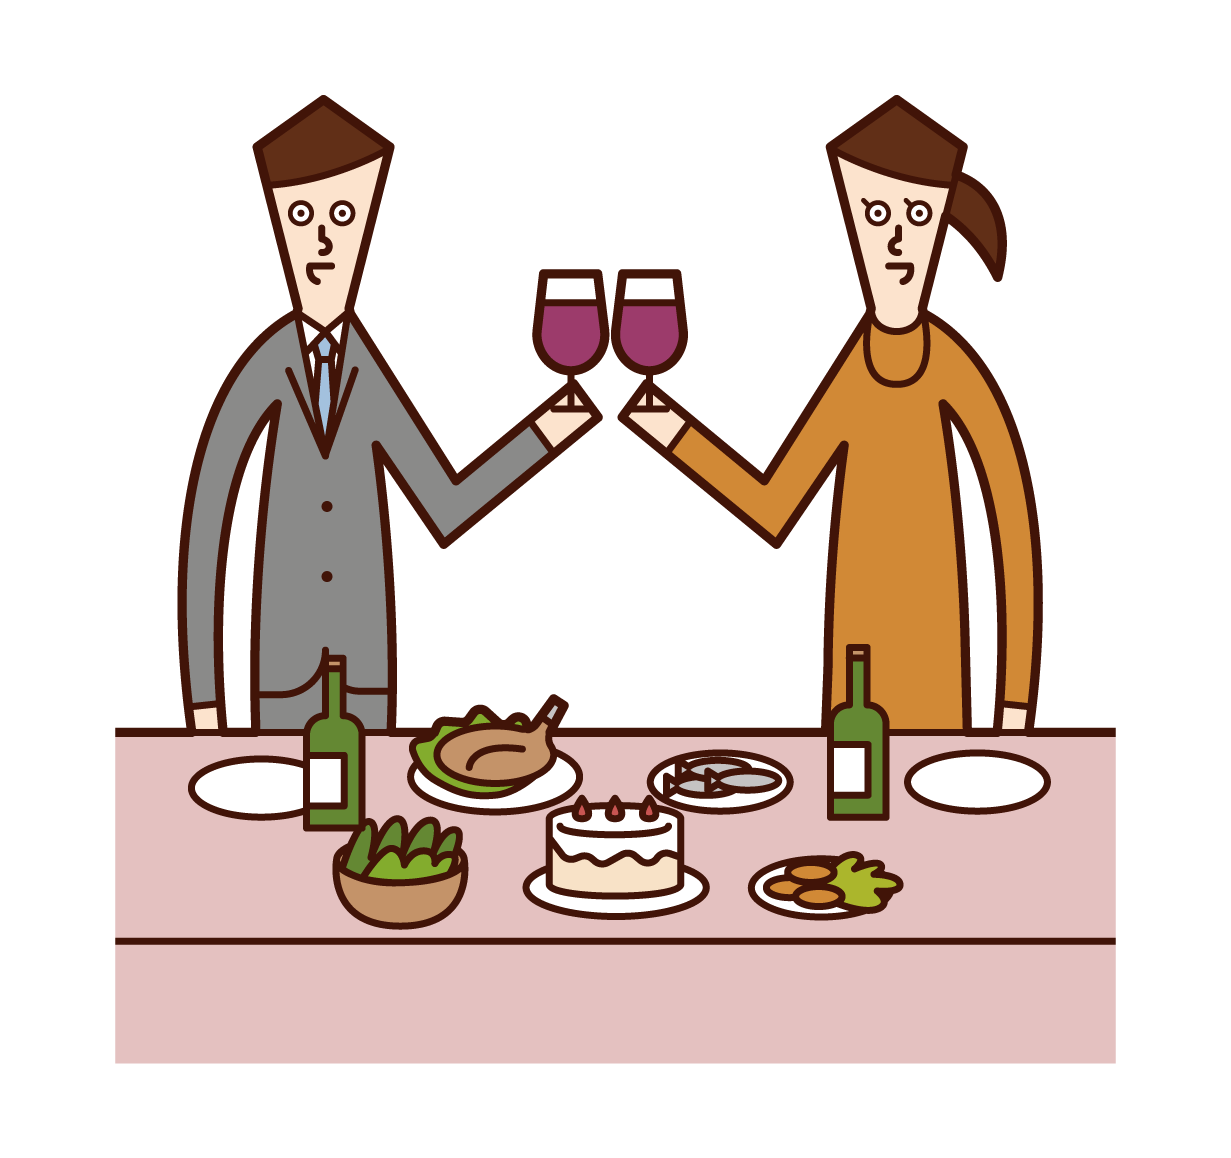 Illustrations of people (men and women) toasting at a party